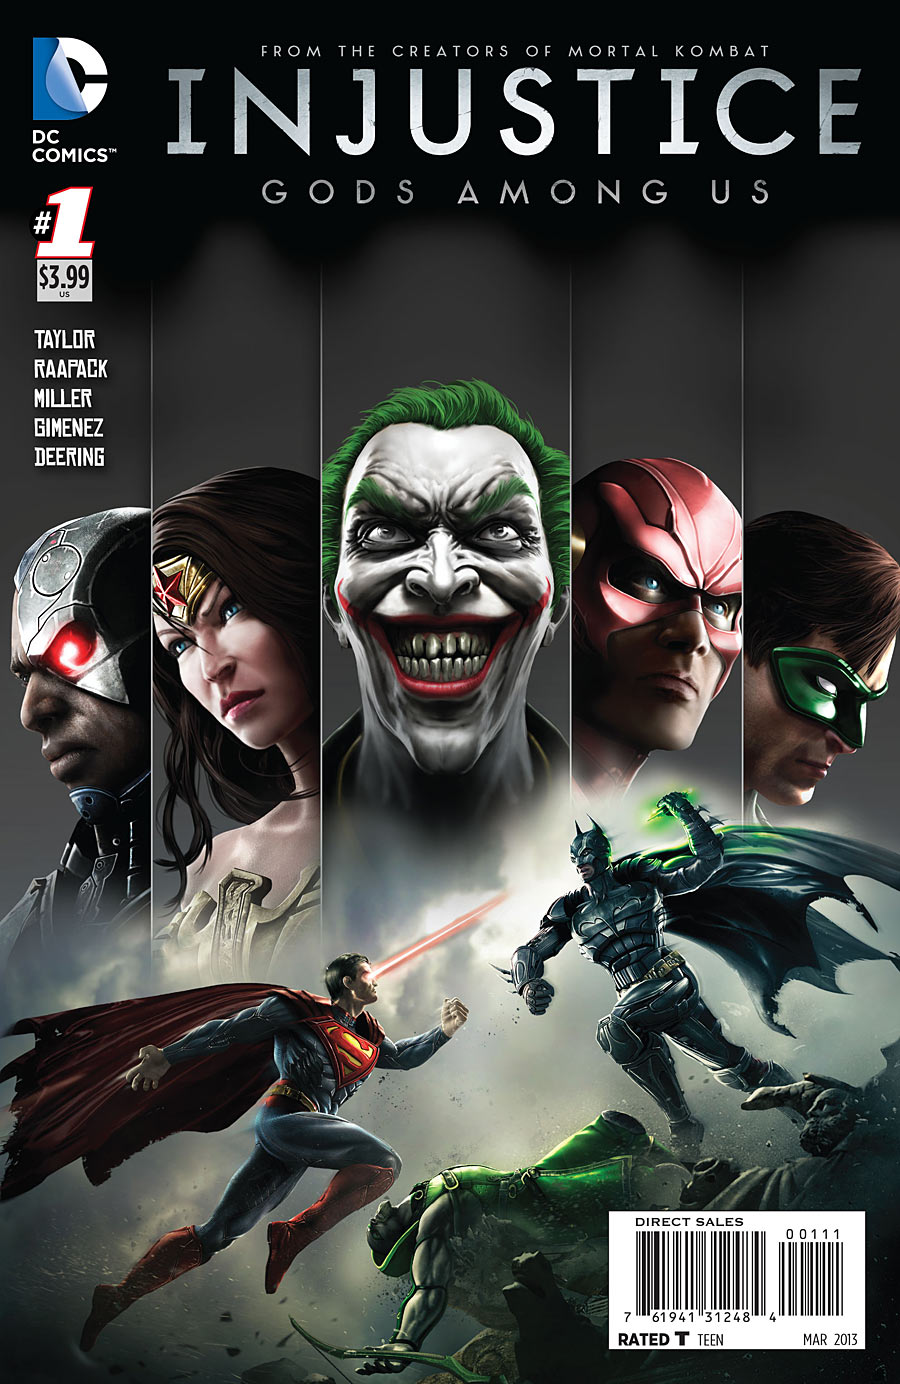 http://vignette3.wikia.nocookie.net/marvel_dc/images/a/a1/Injustice_Gods_Among_Us_Vol_1_1.jpg/revision/latest?cb=20131202215125